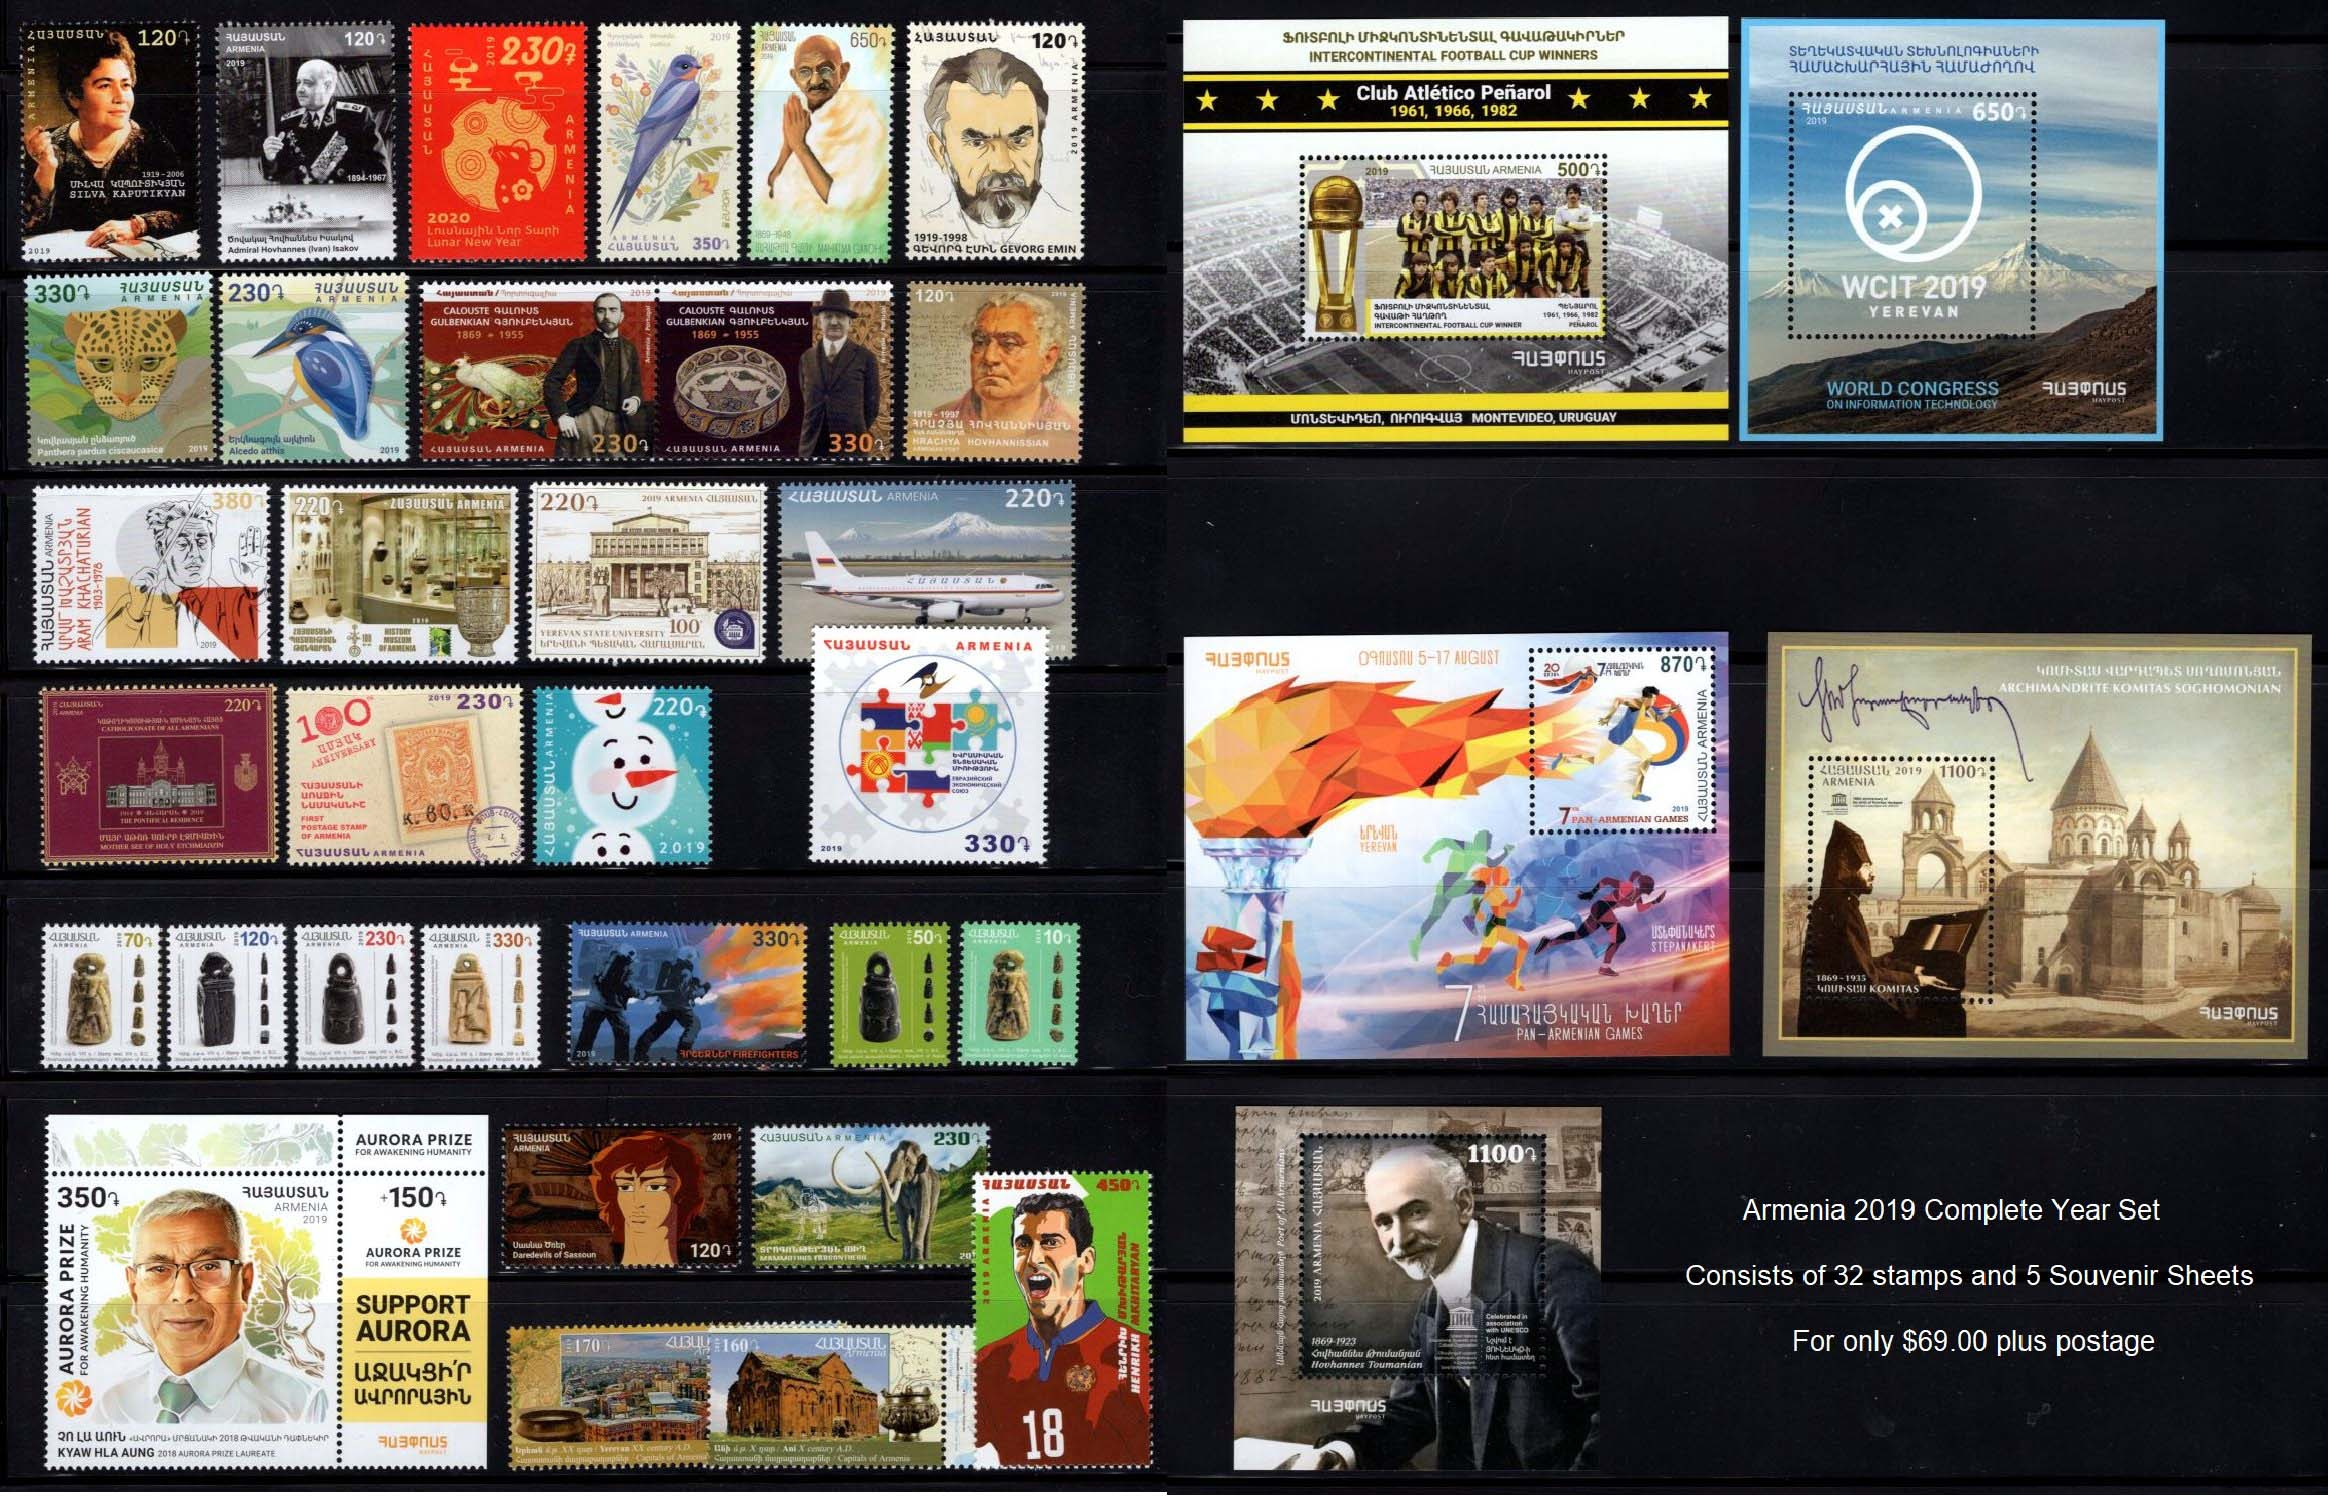 "<font =1-891>Armenia 2019 Complete Year Set.  A total of 32 stamps and 5 Souvenir Sheets  <a href=""/images/Armenia-2019C-YearSet.jpg\"">   <font color=green><b><br>View the image</b></a></font>"